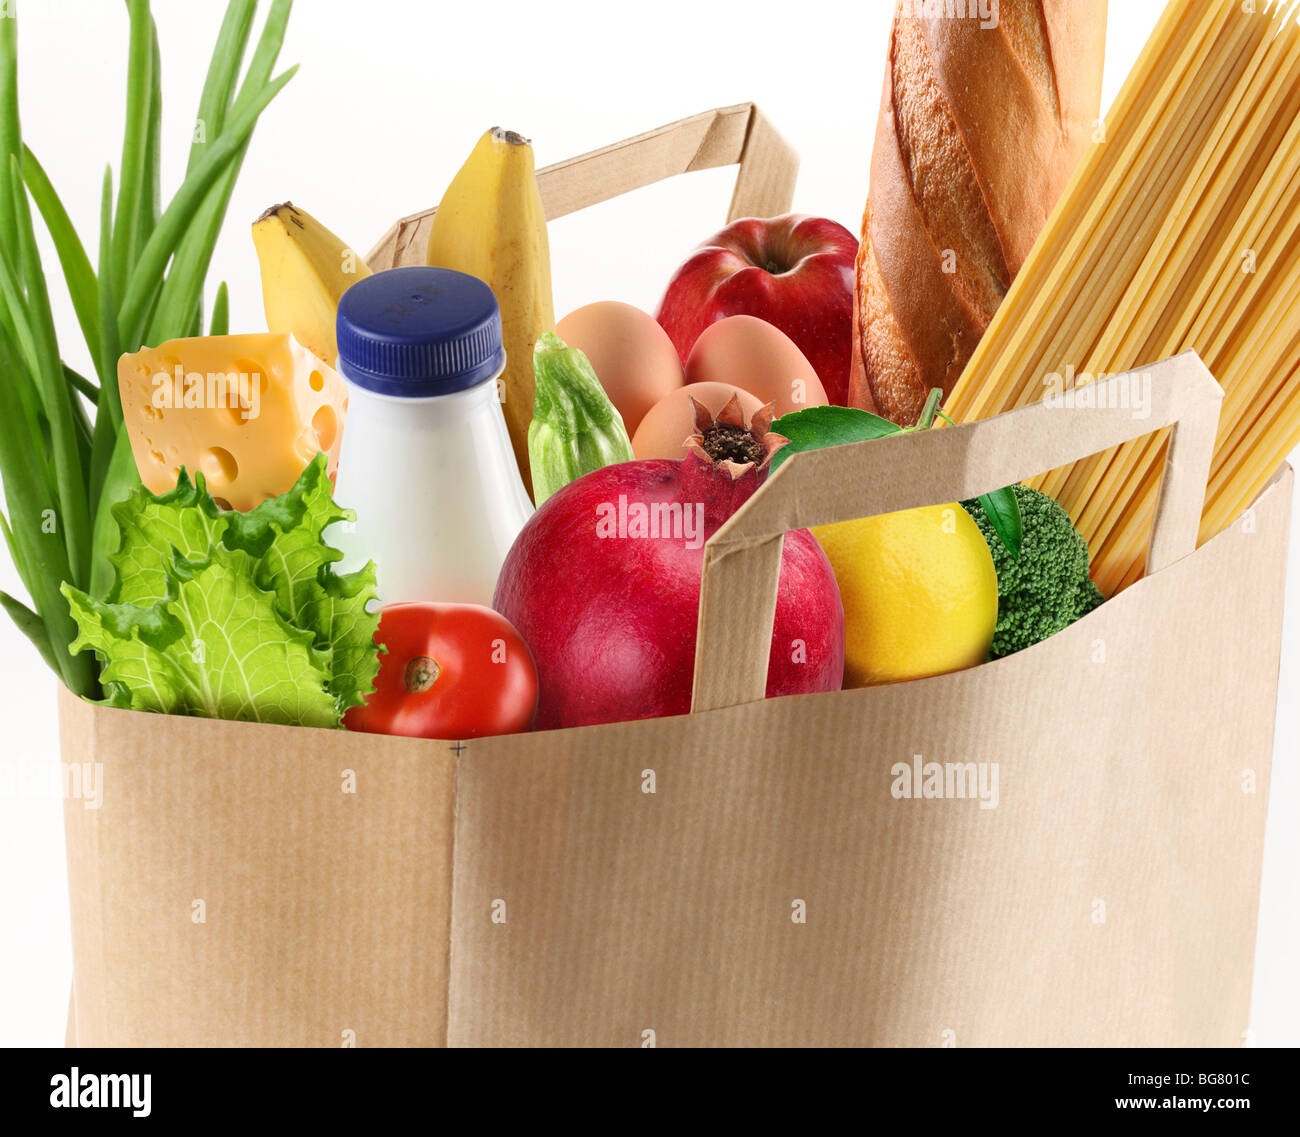 paper bag with food on a white background - Stock Image